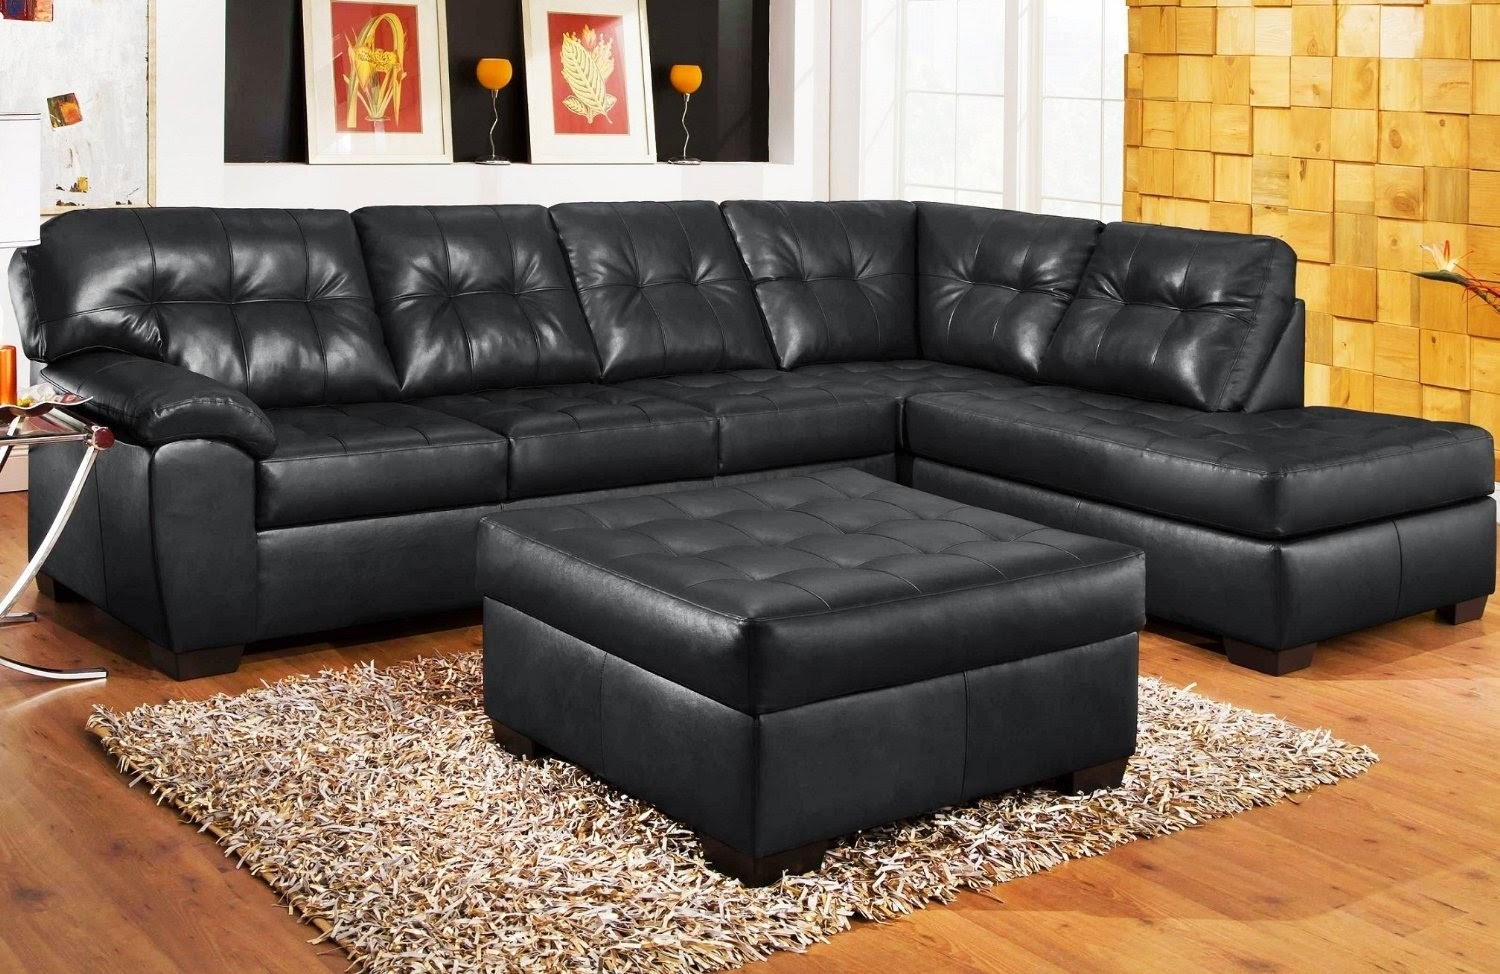 Black Couch: Black Sectional Couch Throughout Black Sectional Sofas (Image 1 of 10)